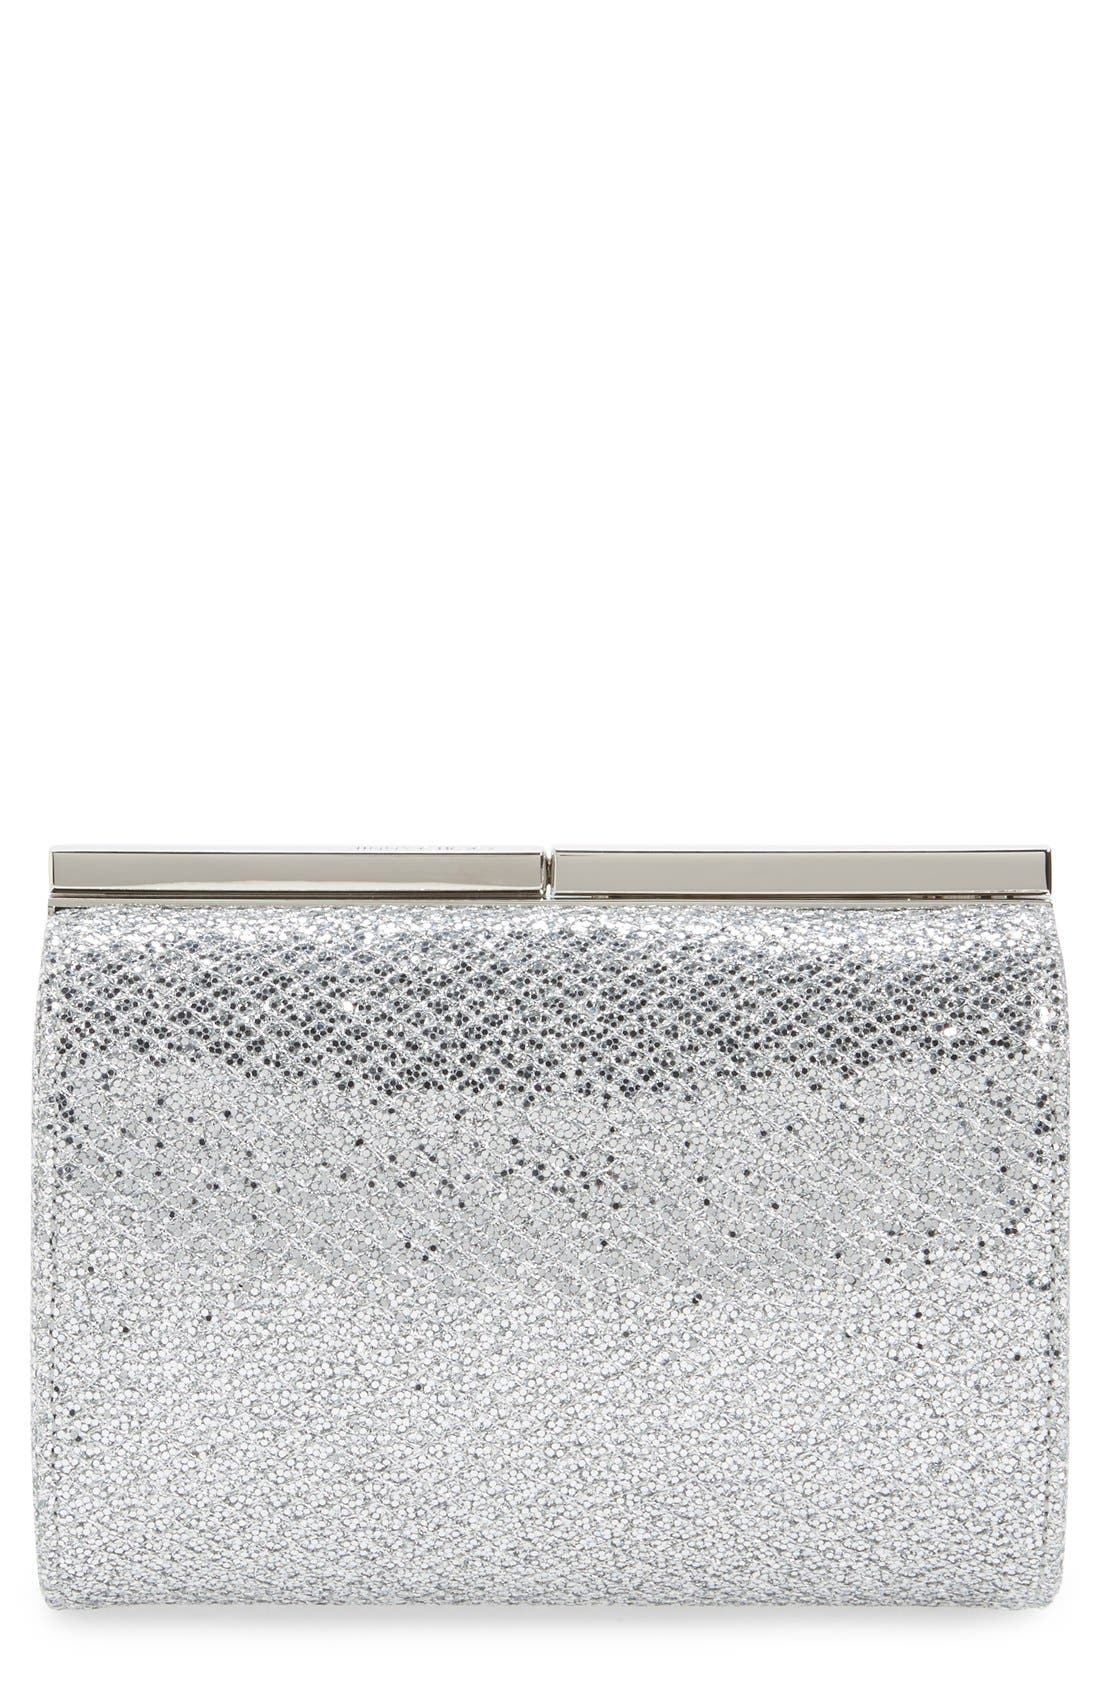 Main Image - Jimmy Choo 'Cate' Glitter Box Clutch